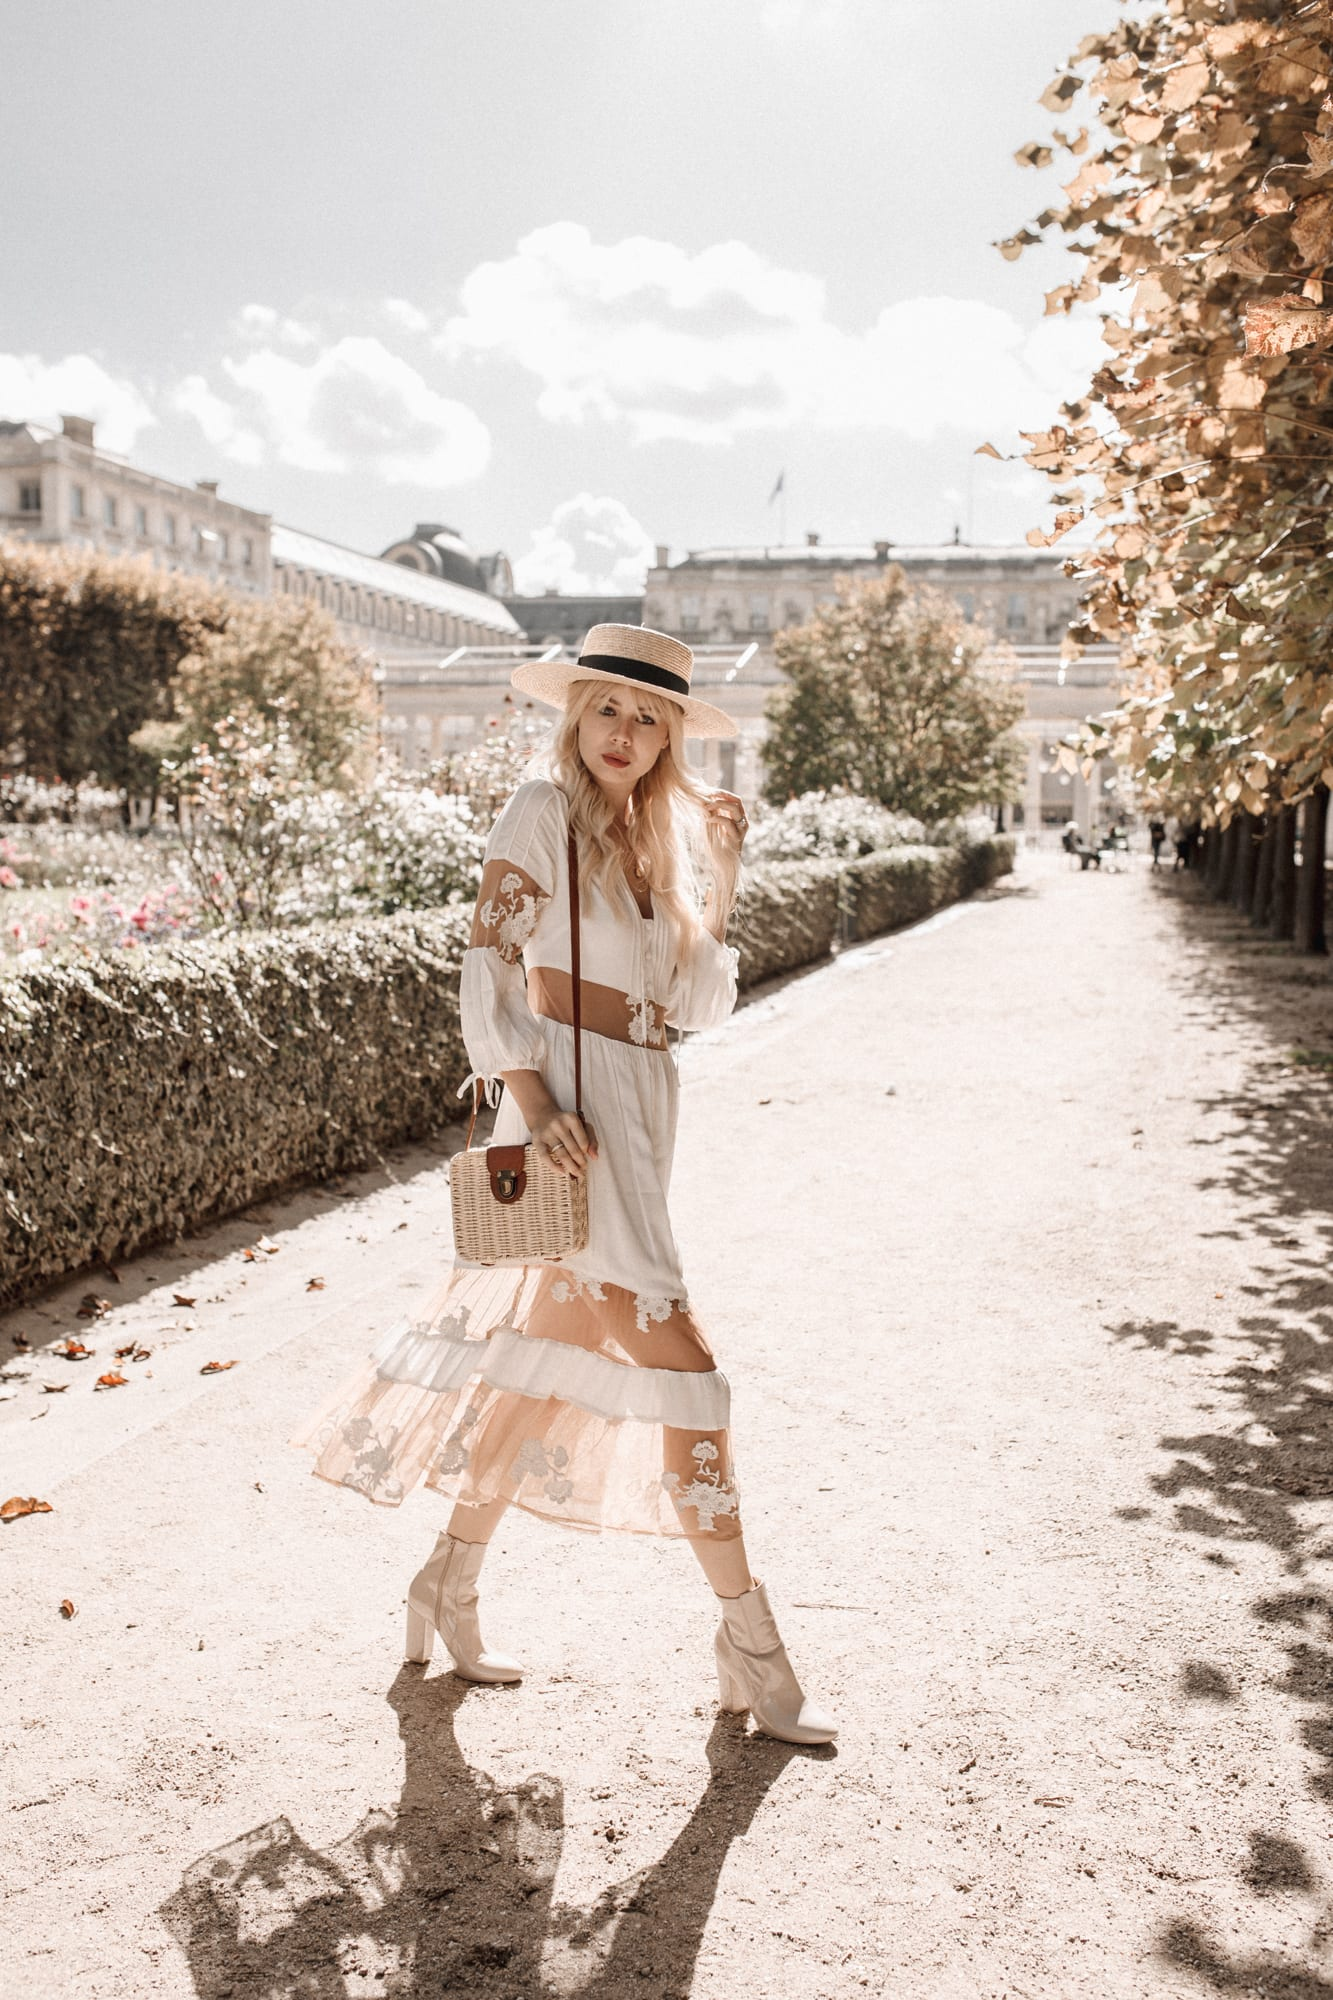 Sarah Loven wear white For Love & Lemons dress in Paris